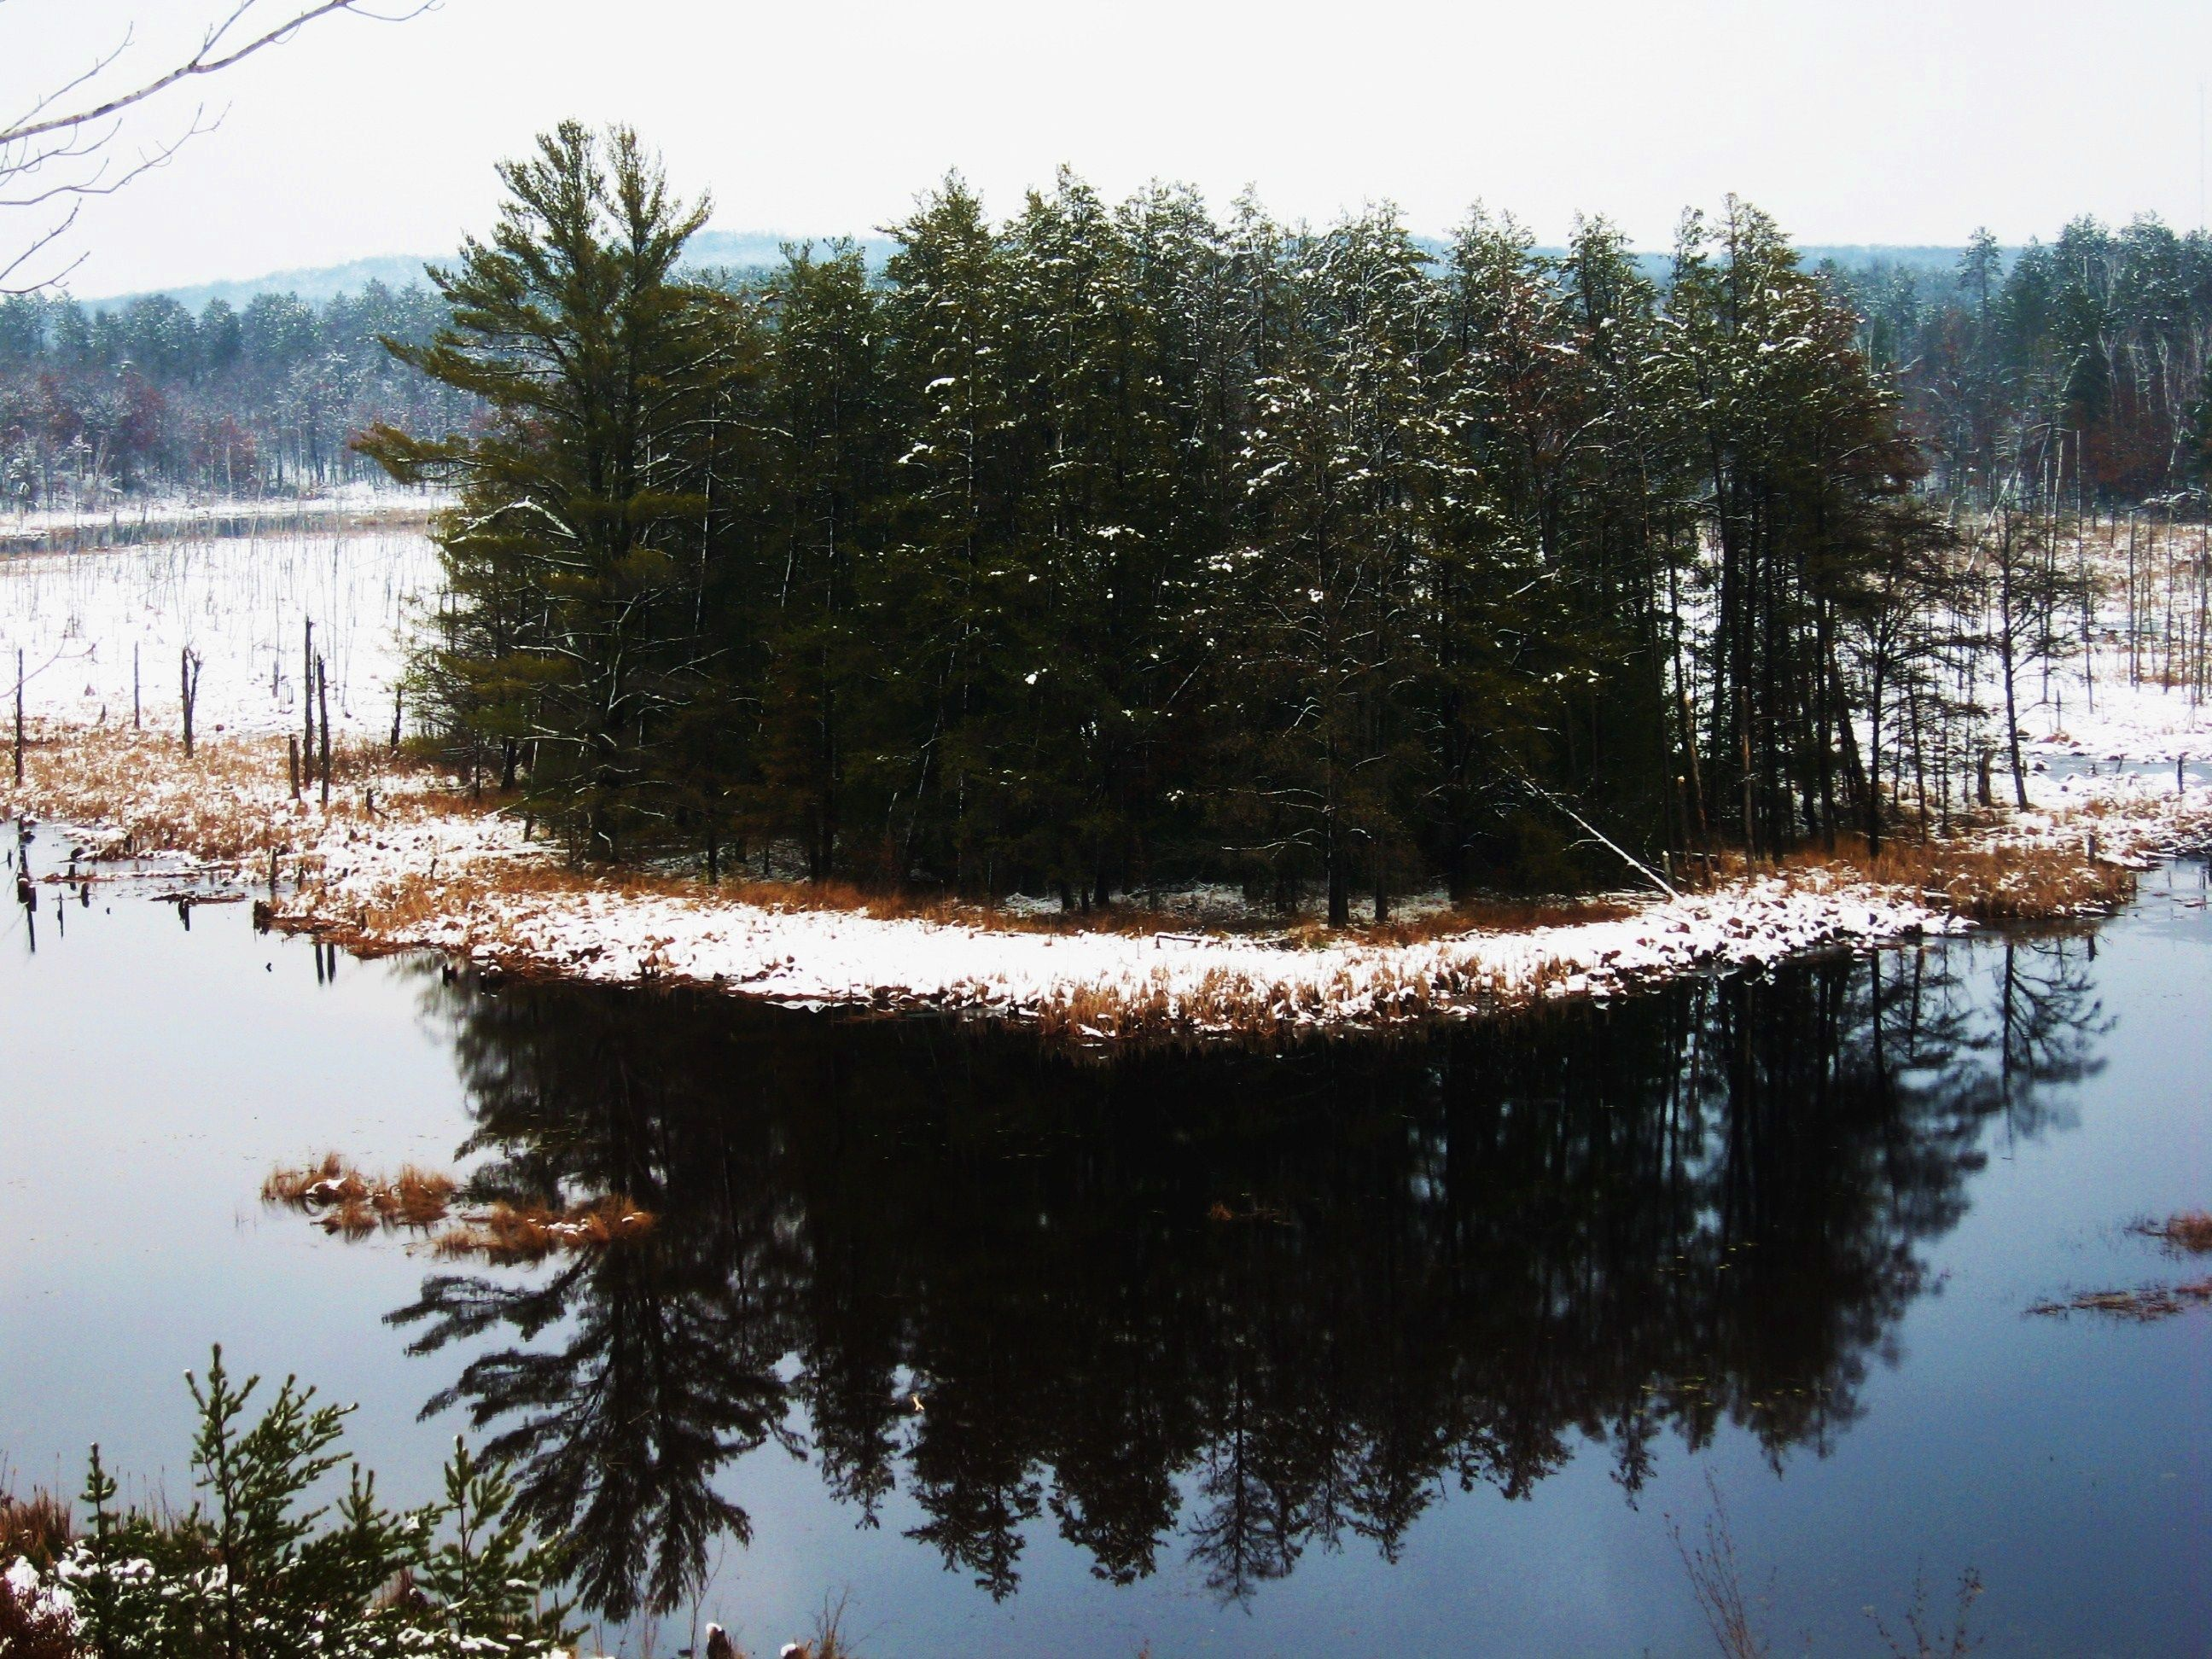 First snow on the beaver pond - early November.